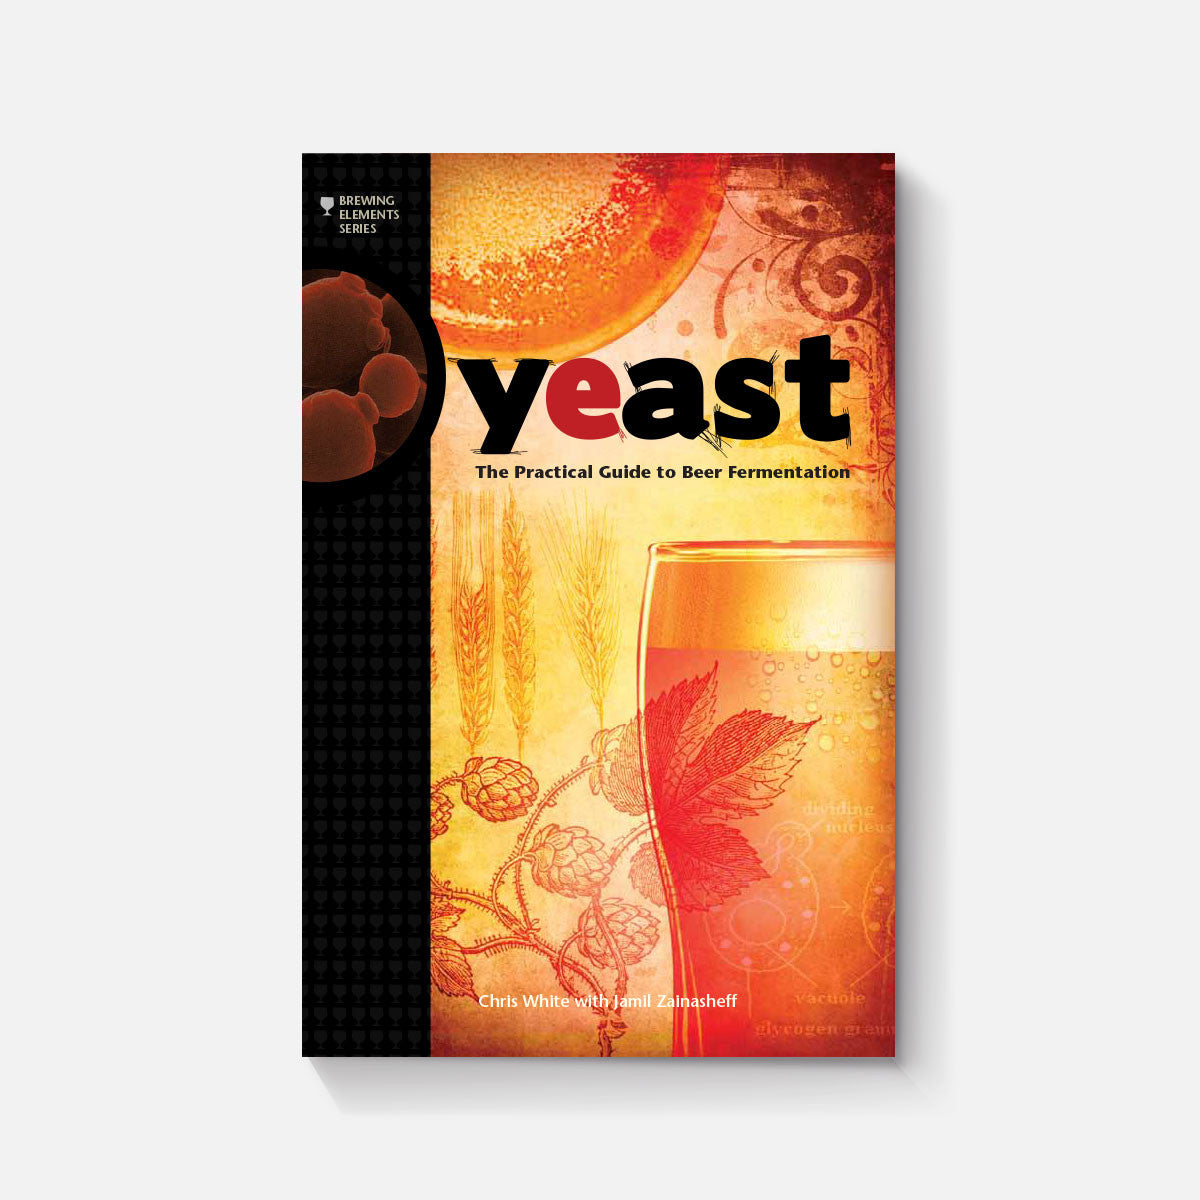 yeast the practical guide to beer fermentation brewers publications